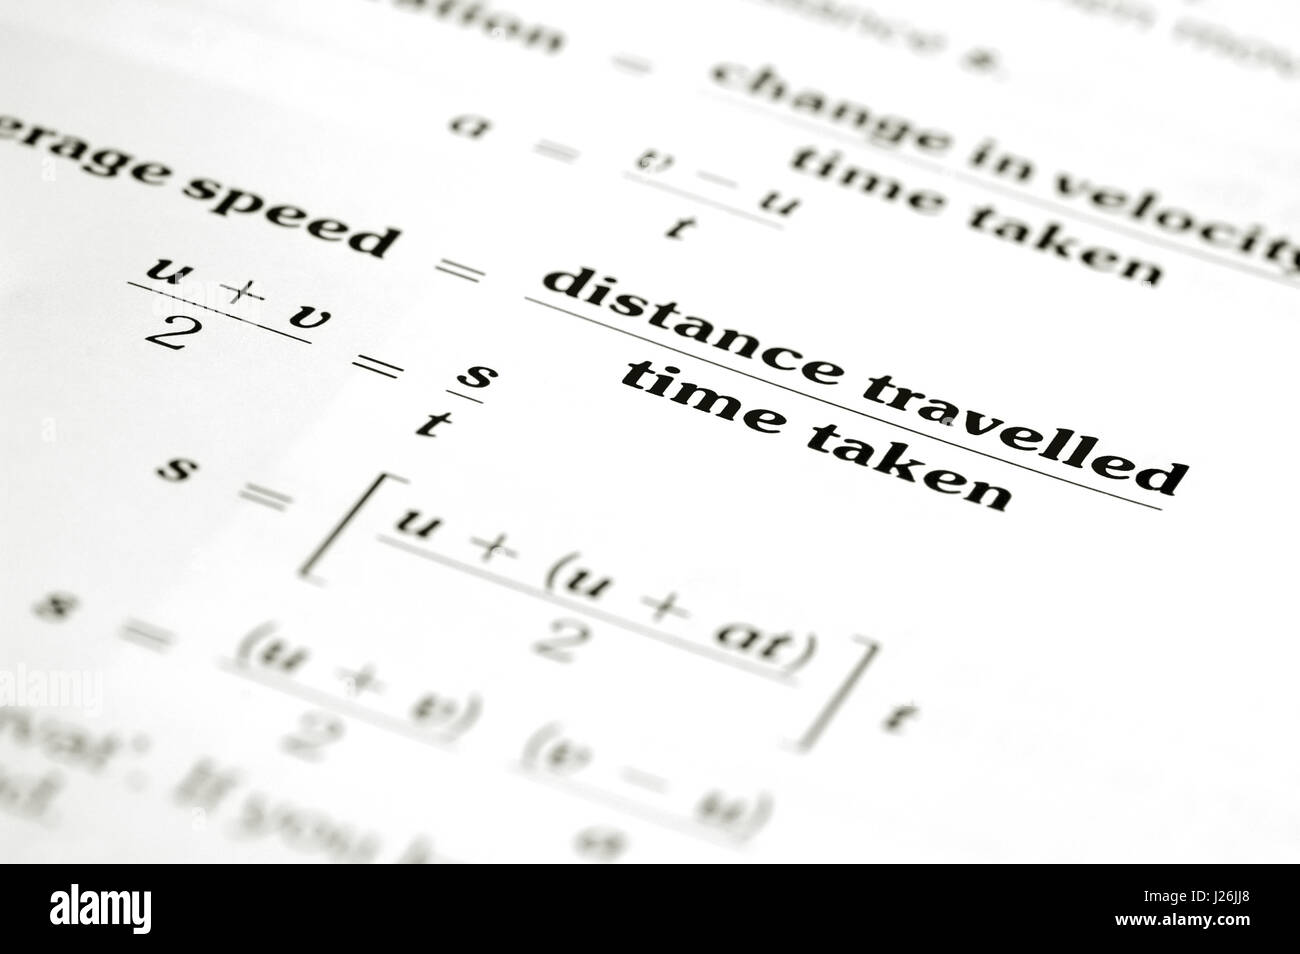 Math Equation Calculating Average Speed Of Distance Over Time Stock Photo